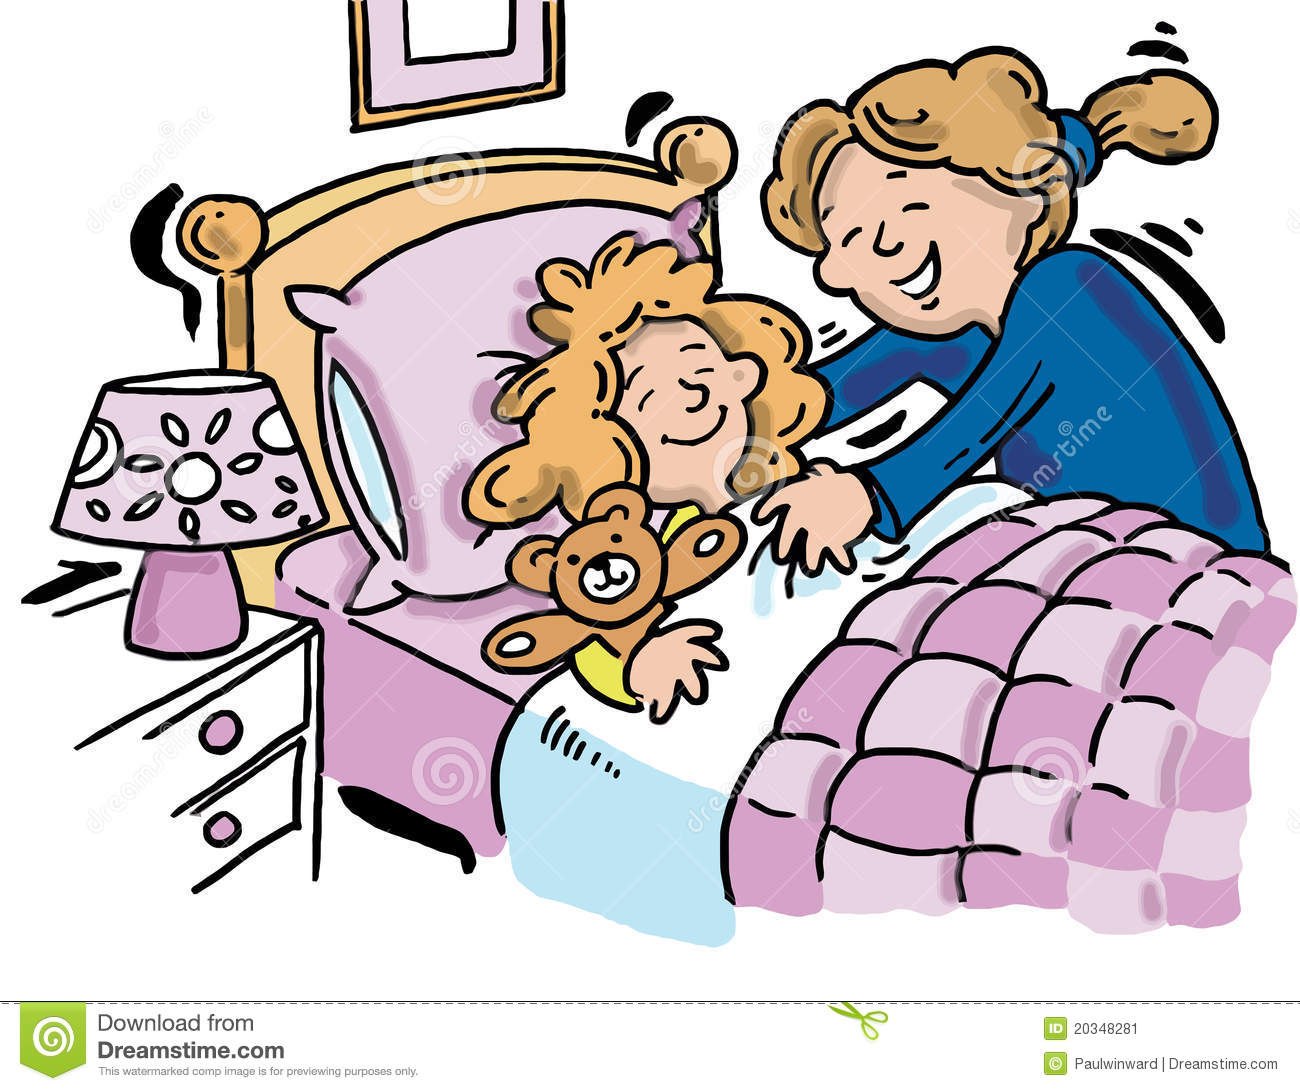 Bedtime clipart bedtime story. Little girl pencil and